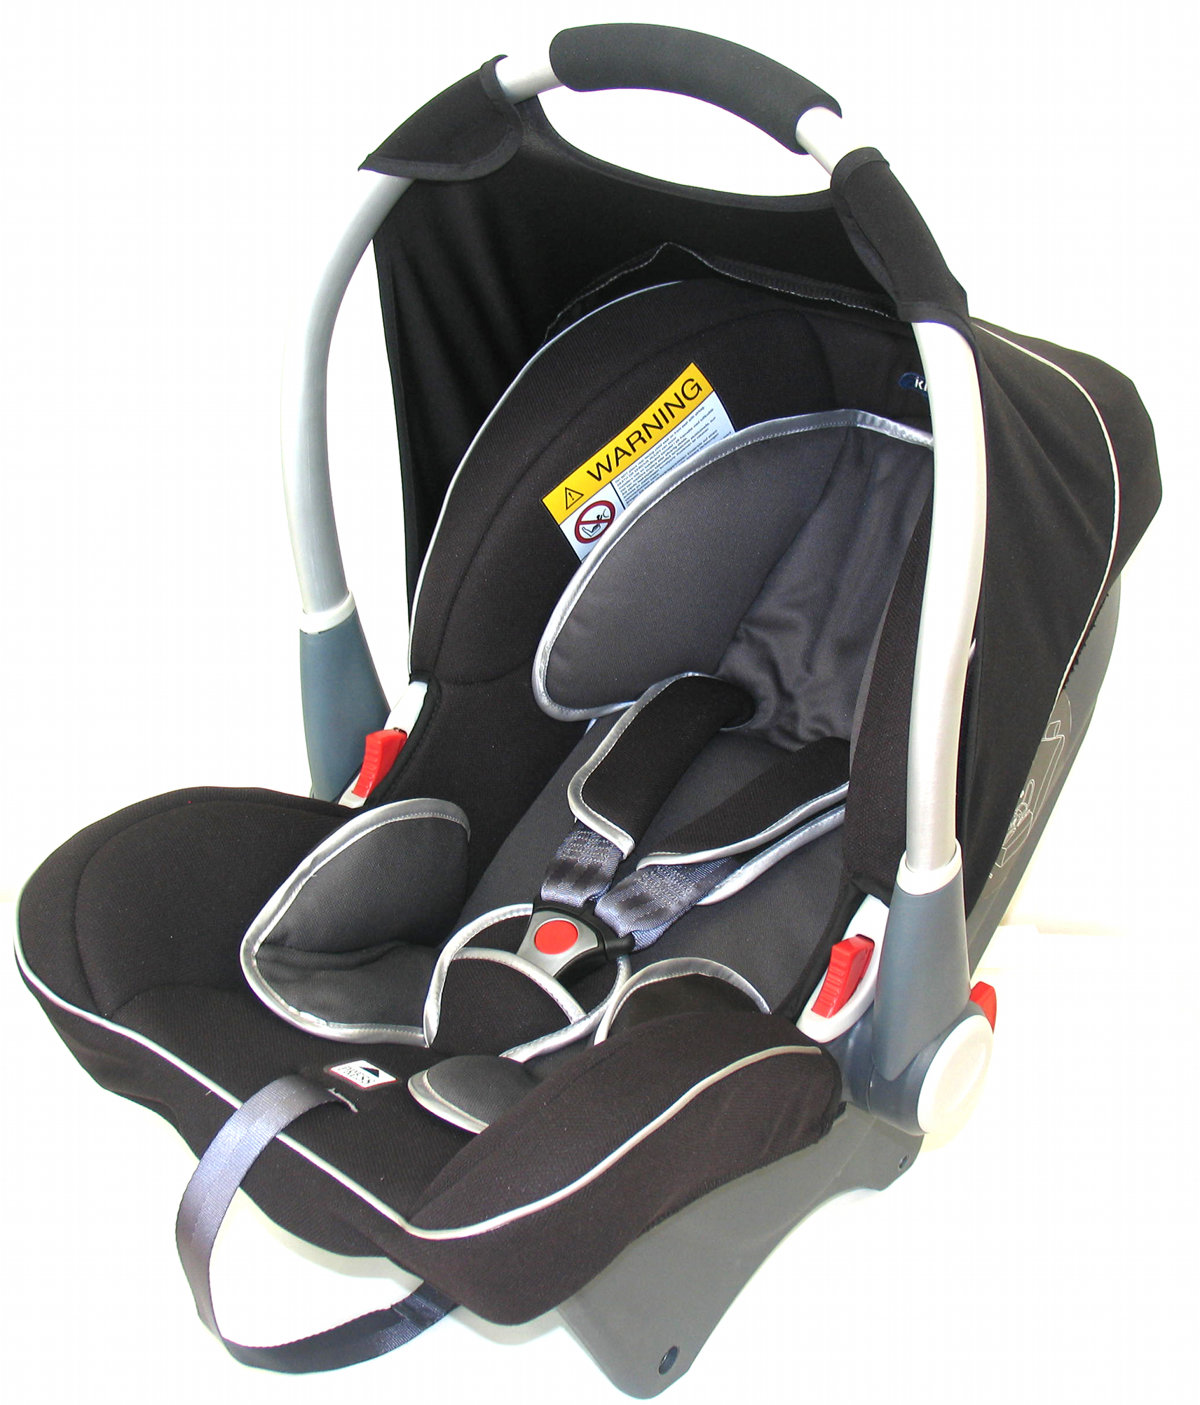 Klippan Dinofix - Black-Grey